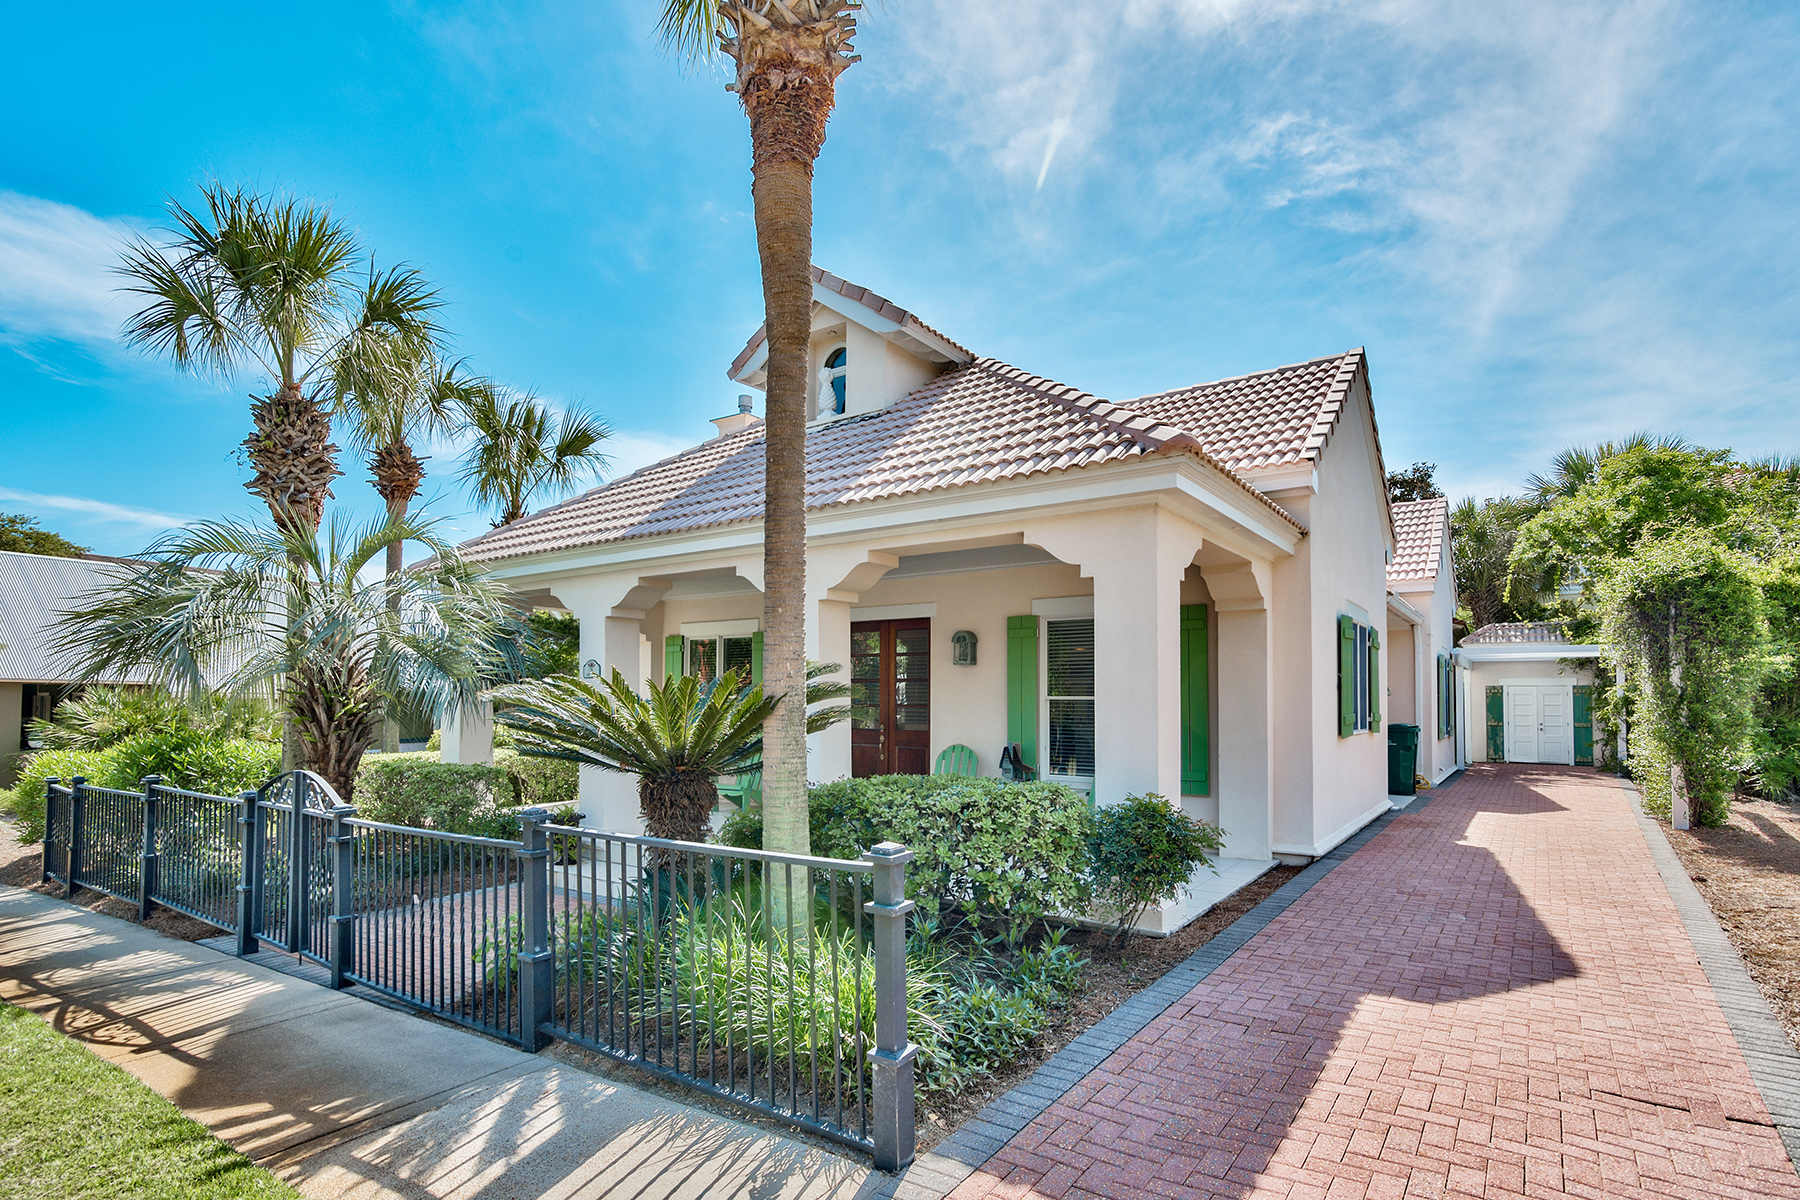 Single Family Home for Sale at CARIBBEAN STYLE COTTAGE JUST A STROLL FROM THE BEACH 76 Rue Caribe Miramar Beach, Florida, 32550 United States